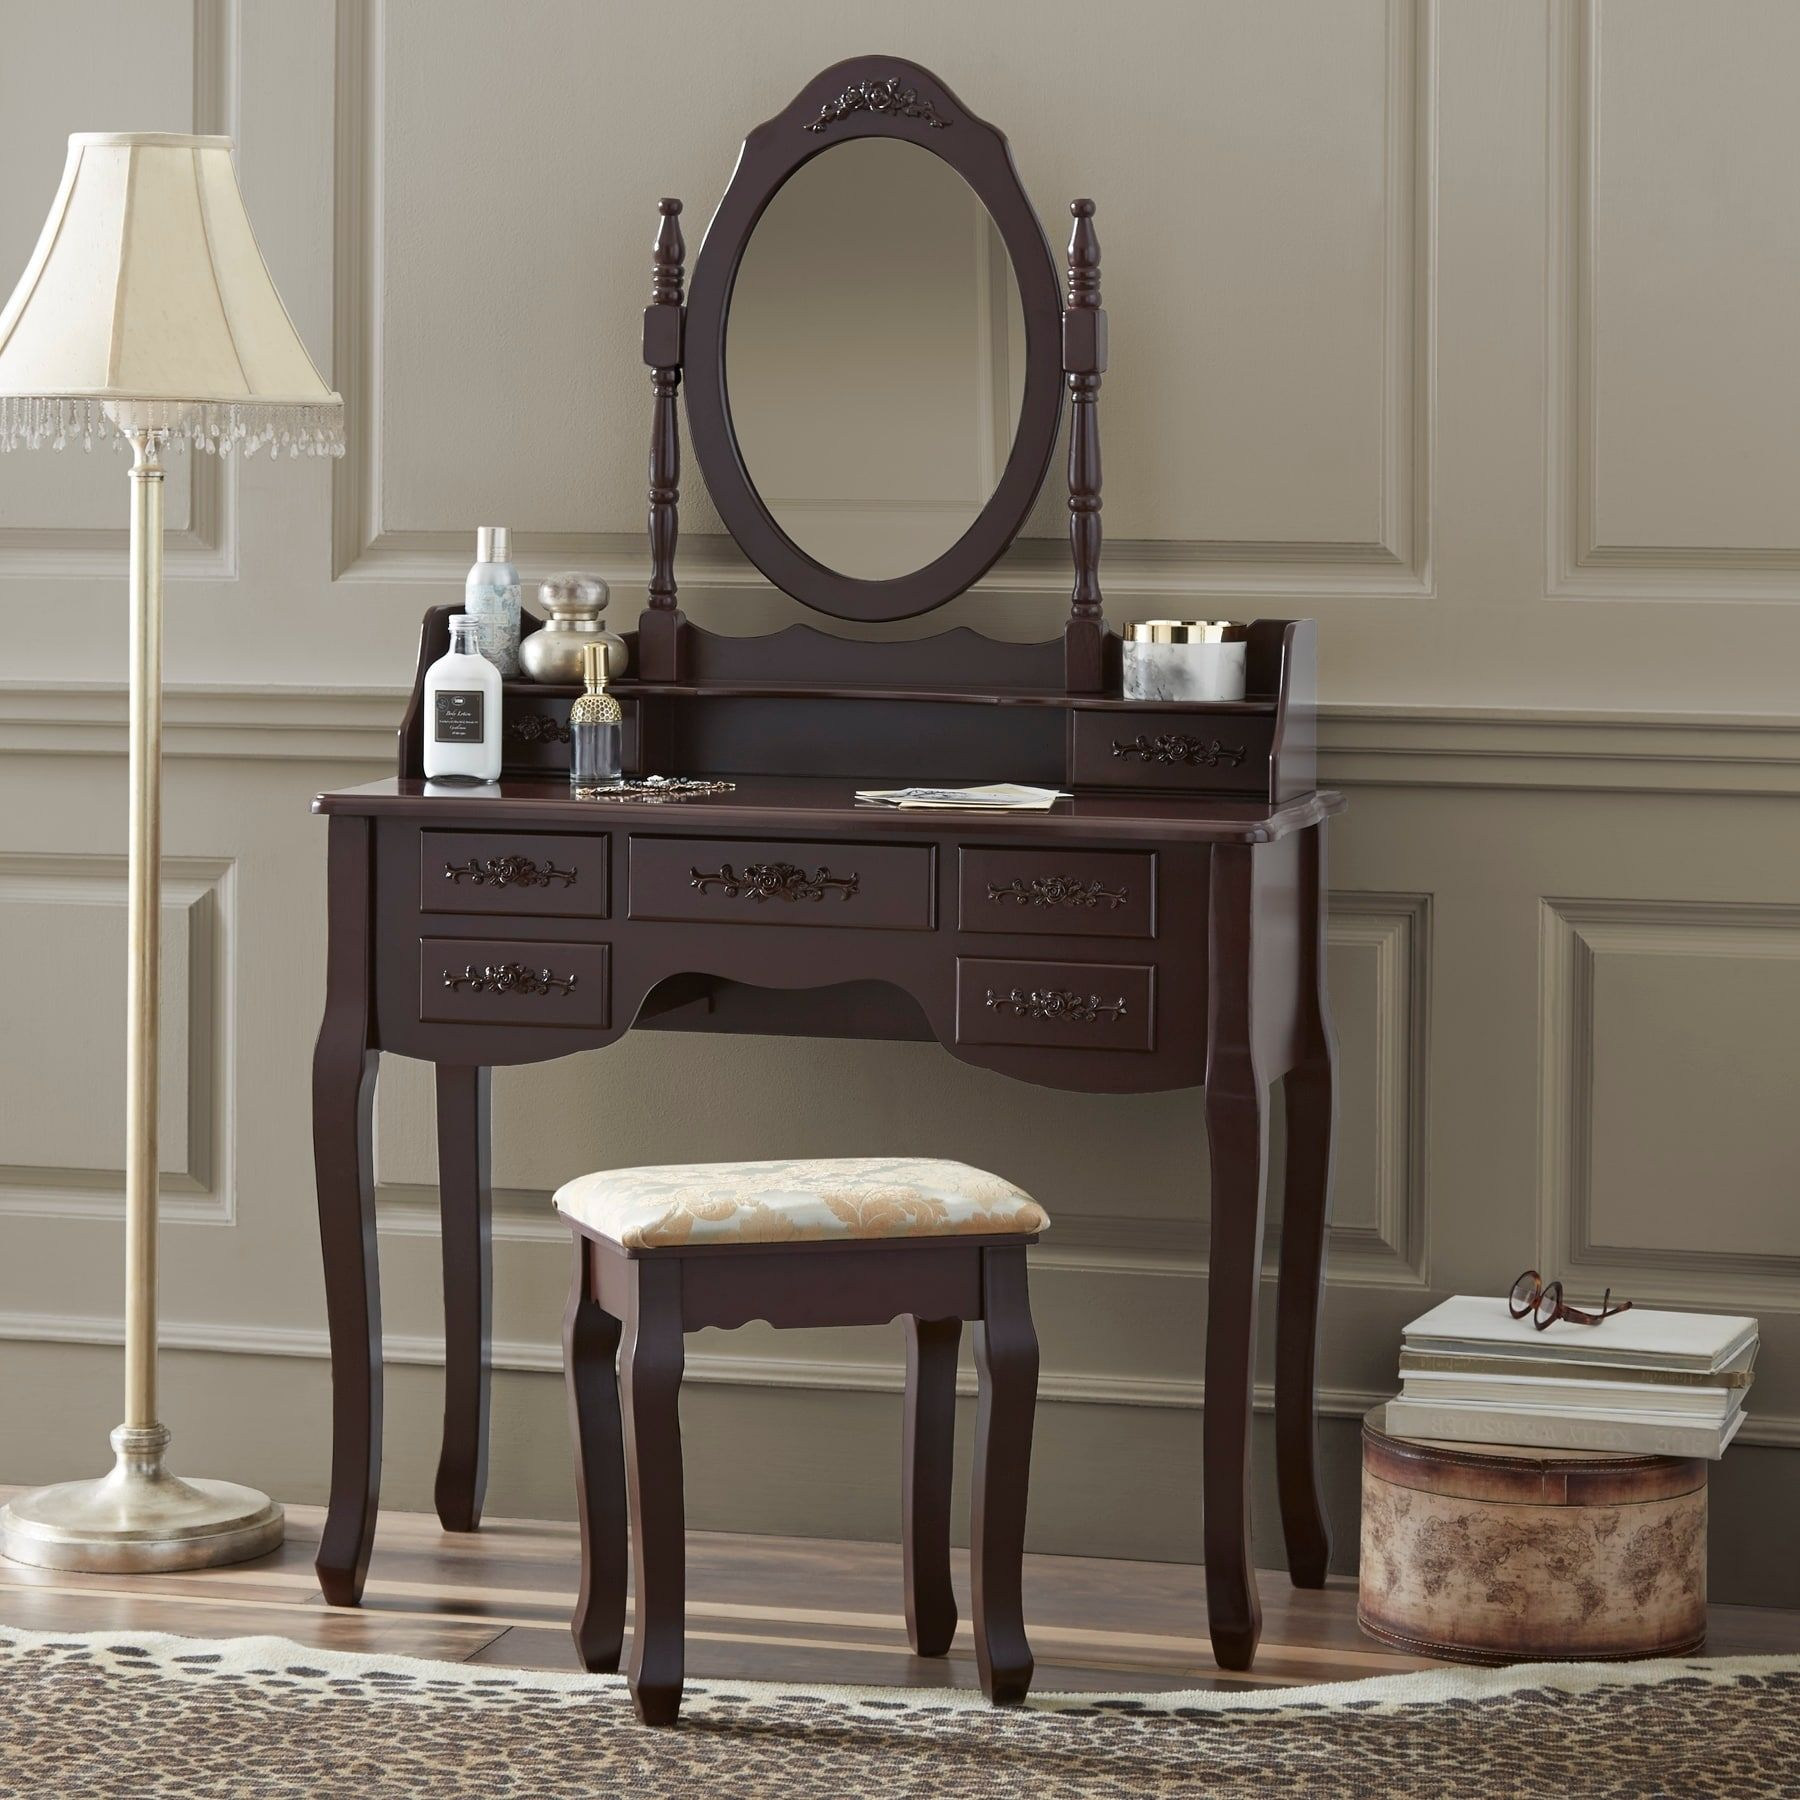 Fineboard Vanity Set With Stool Mirror Makeup Table 7 Organization Drawers Single Oval Make Up